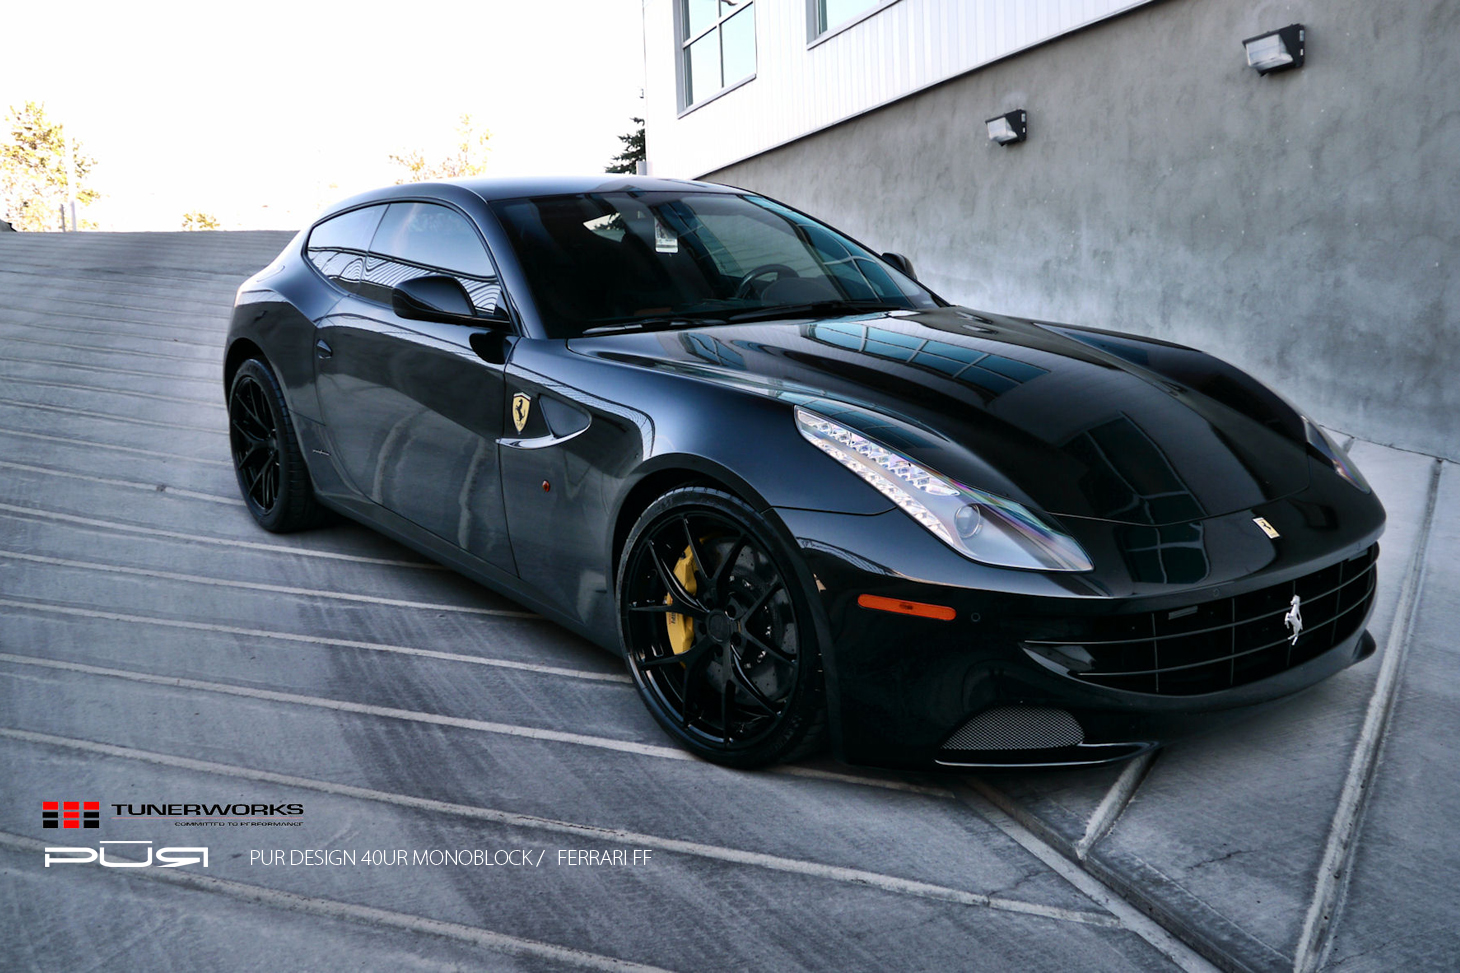 Ferrari FF photo 12